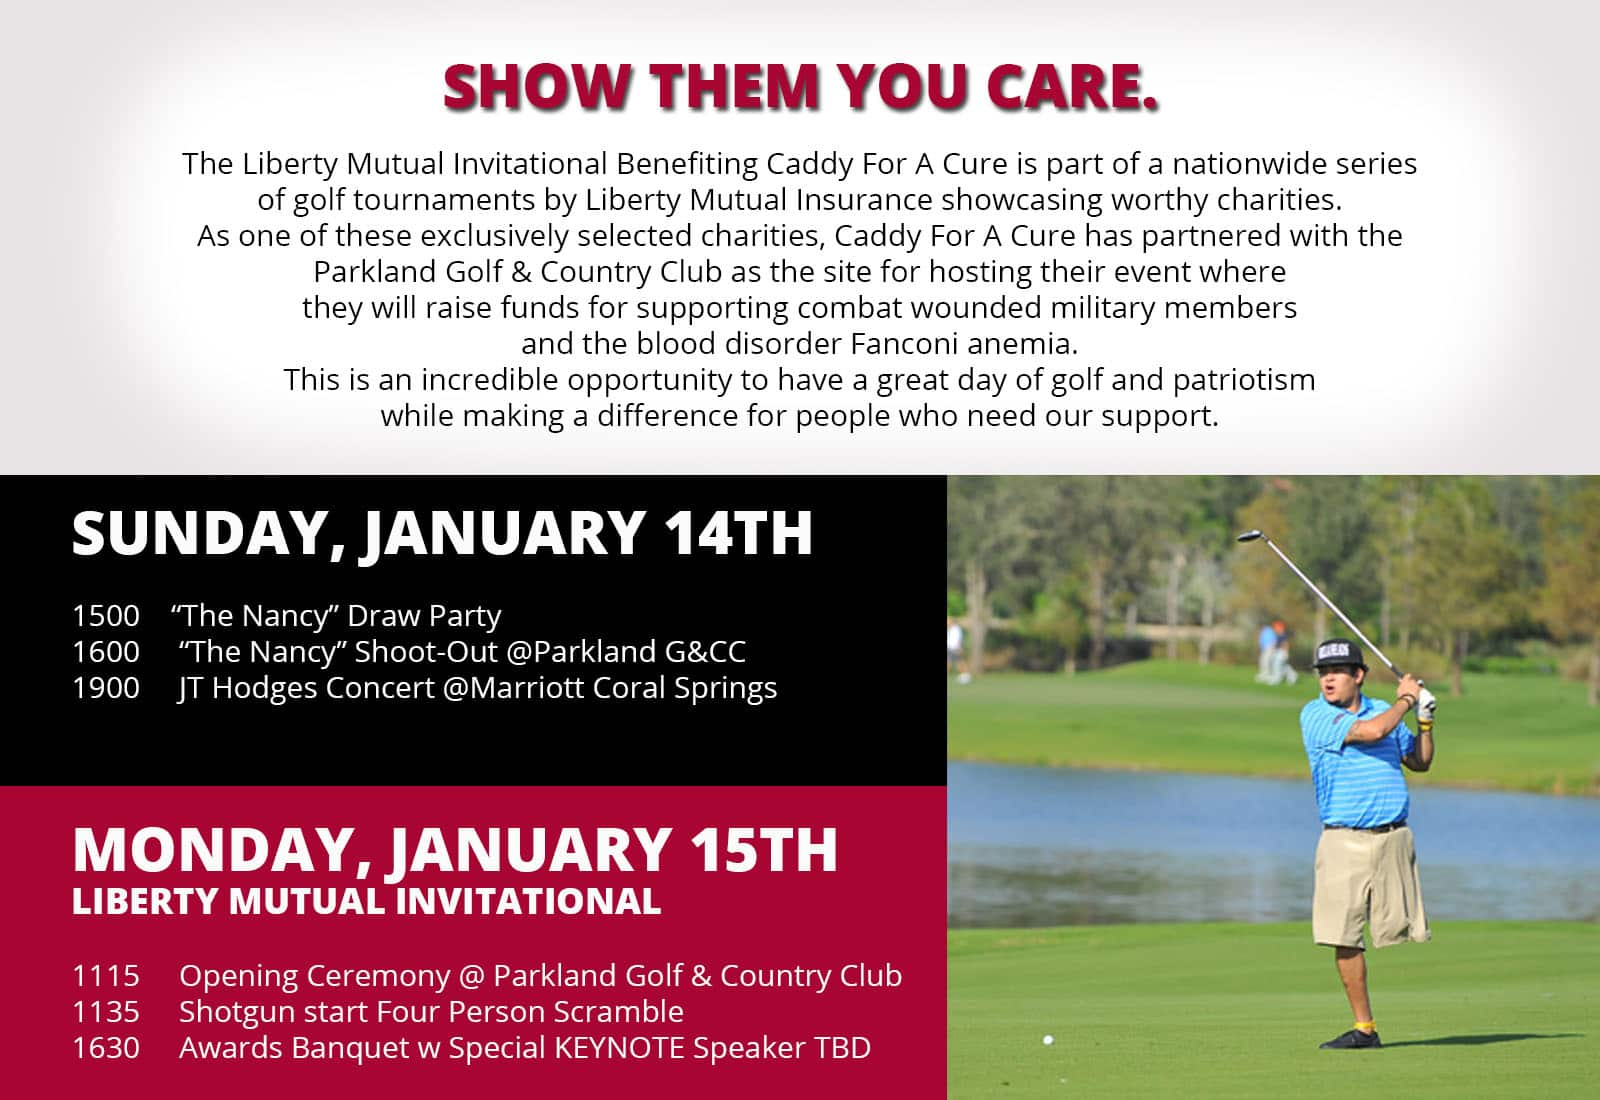 Liberty mutual insurance invitational caddy for a cure publicscrutiny Choice Image